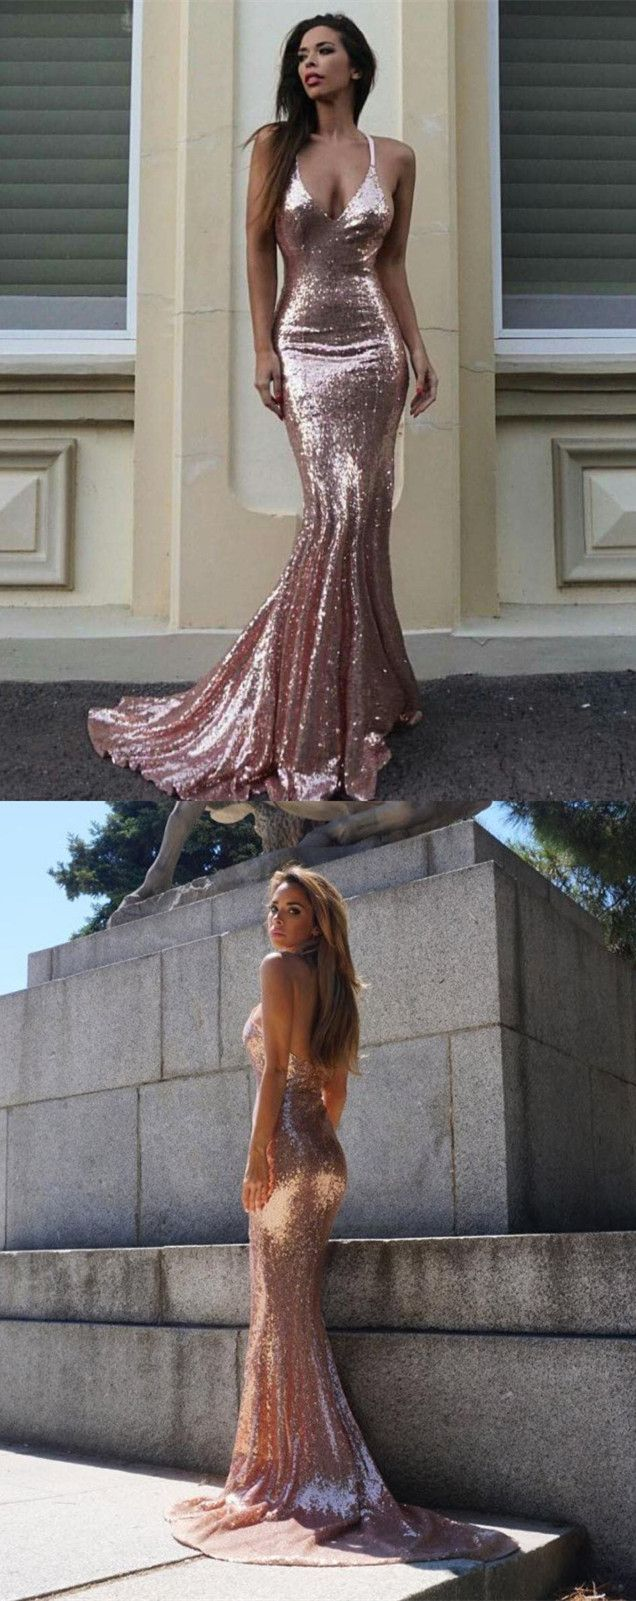 Mermaid spaghetti straps rose gold sequined prom dress glitter